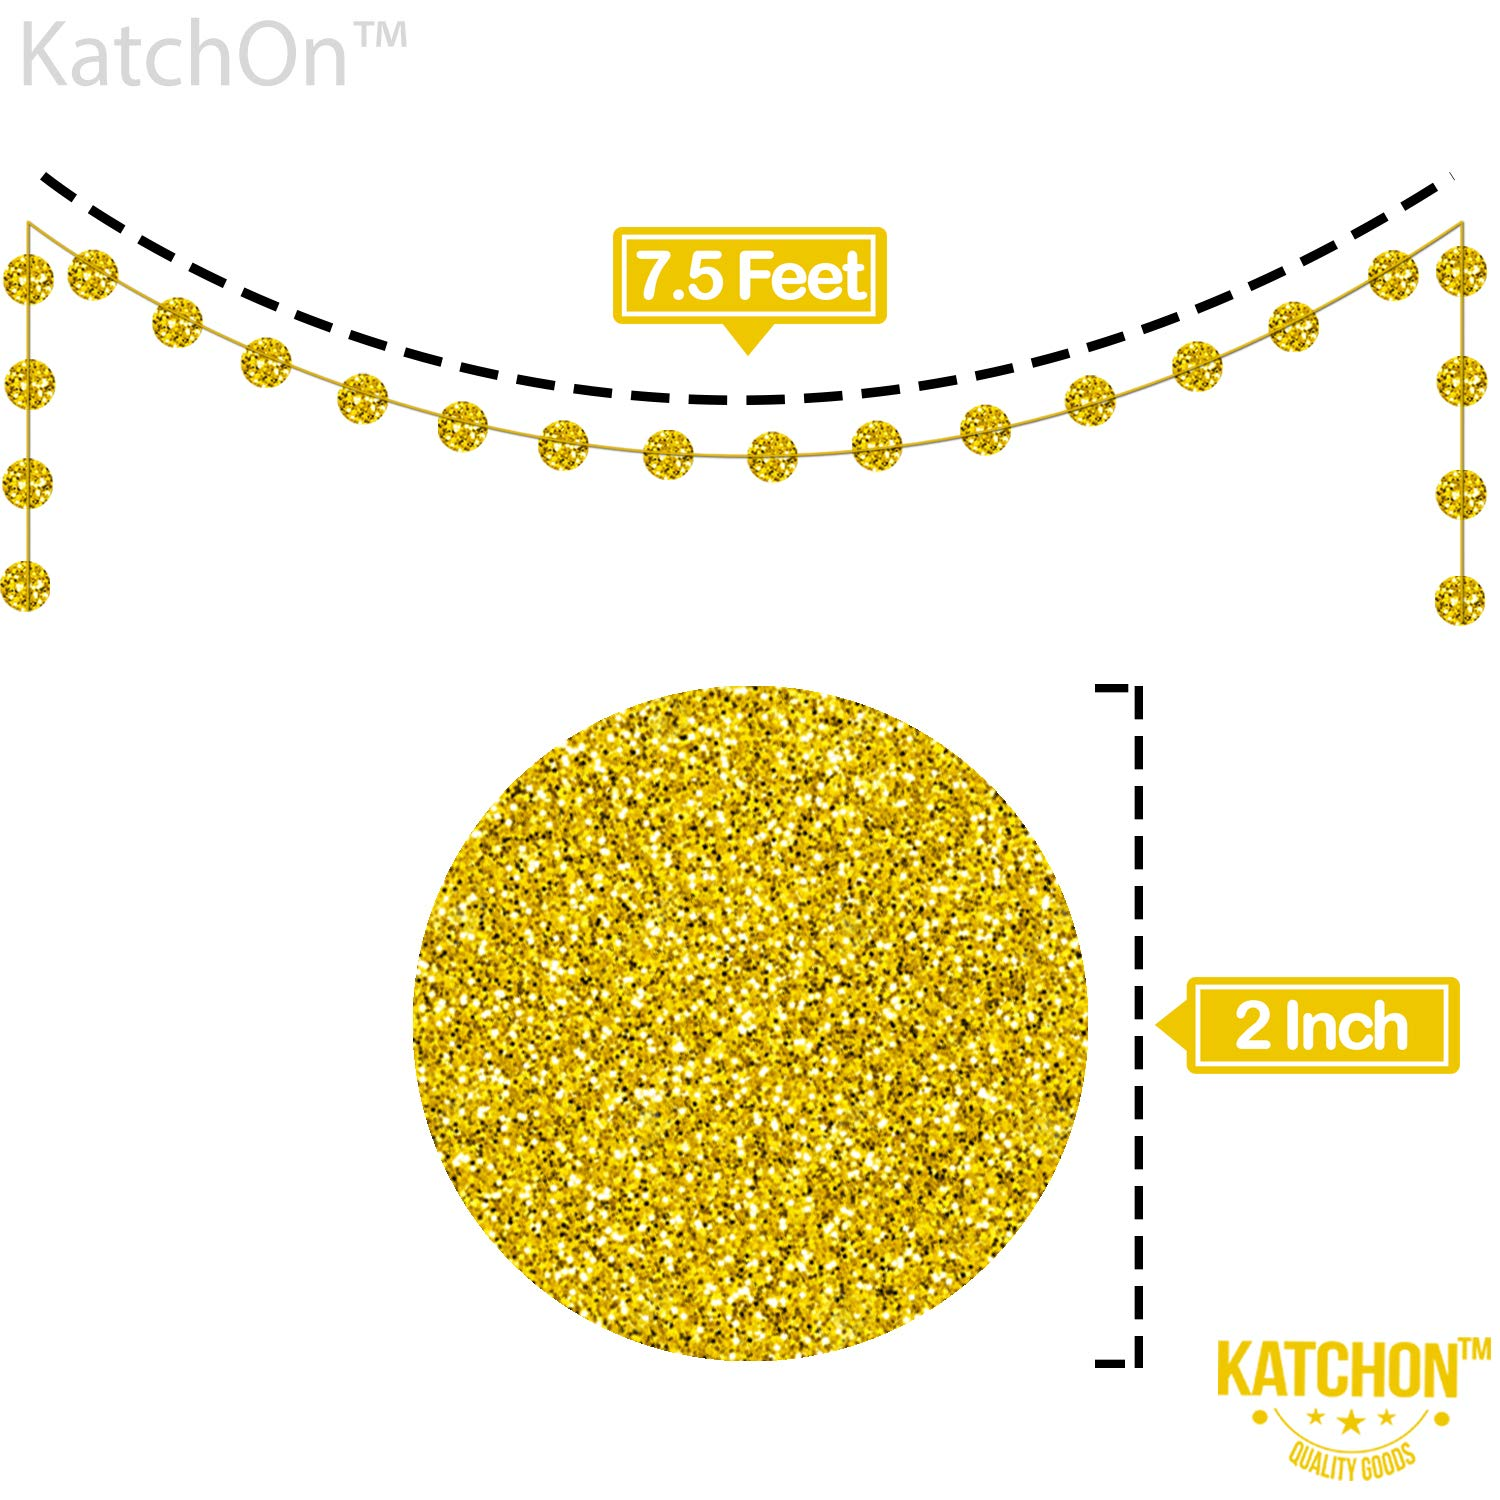 New Years Eve Party Supplies 2020 NYE Decorations Happy New Year Banner Real Gold Glitter New Years Eve Party Banner Sign Happy New Year Party Decorations 2020 Gold Circle Garland No DIY